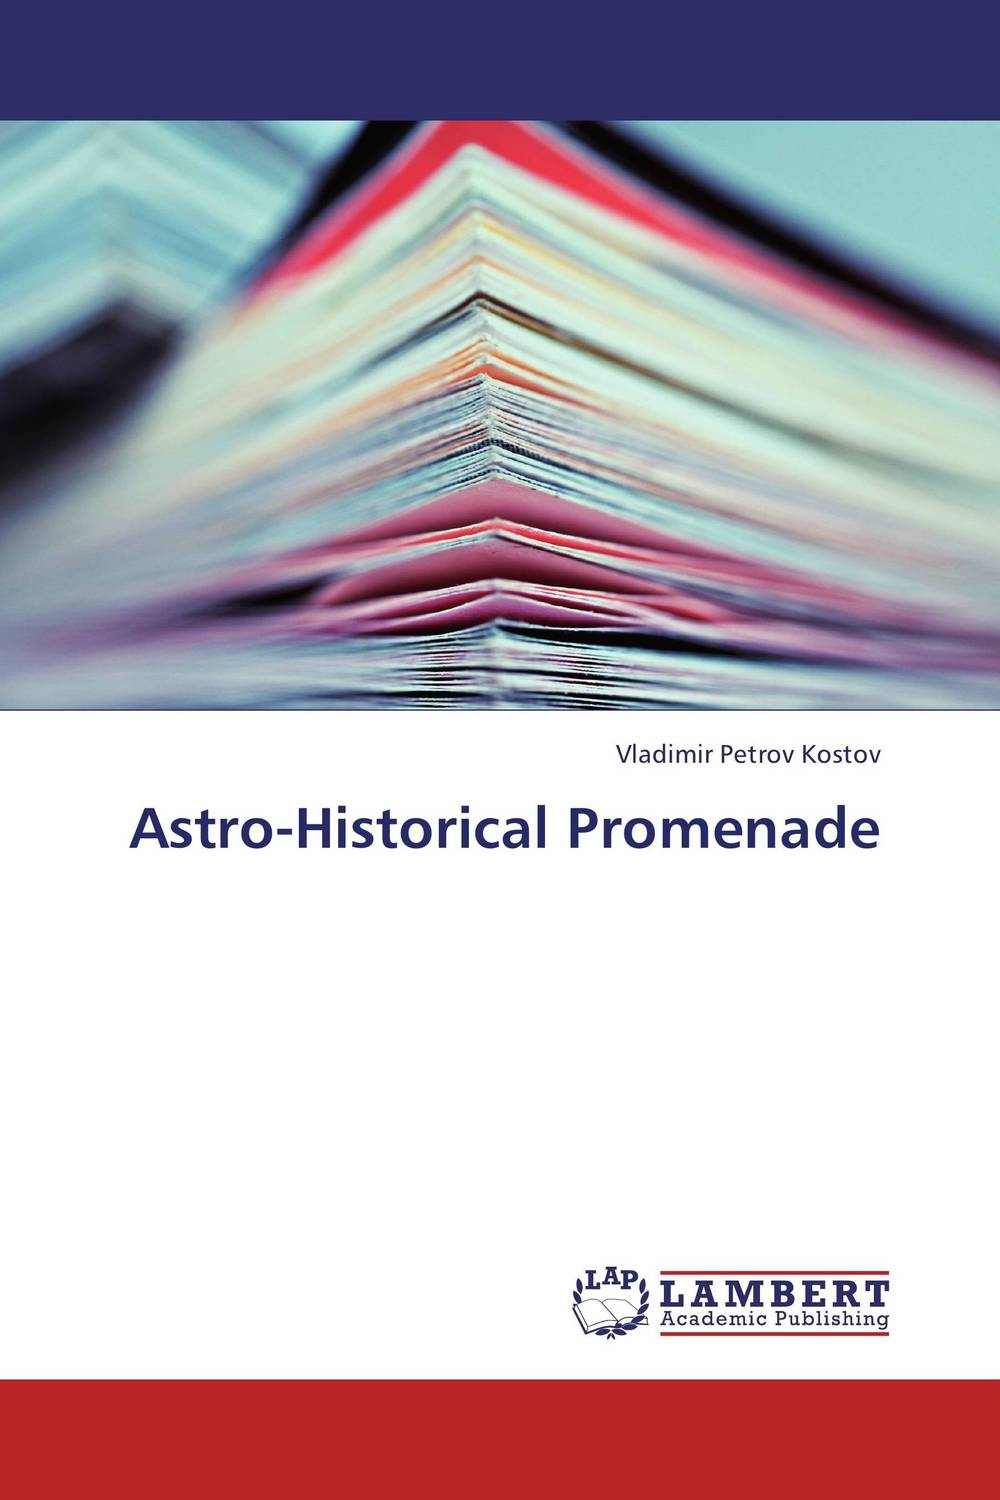 Astro-Historical Promenade samuel richardson clarissa or the history of a young lady vol 8